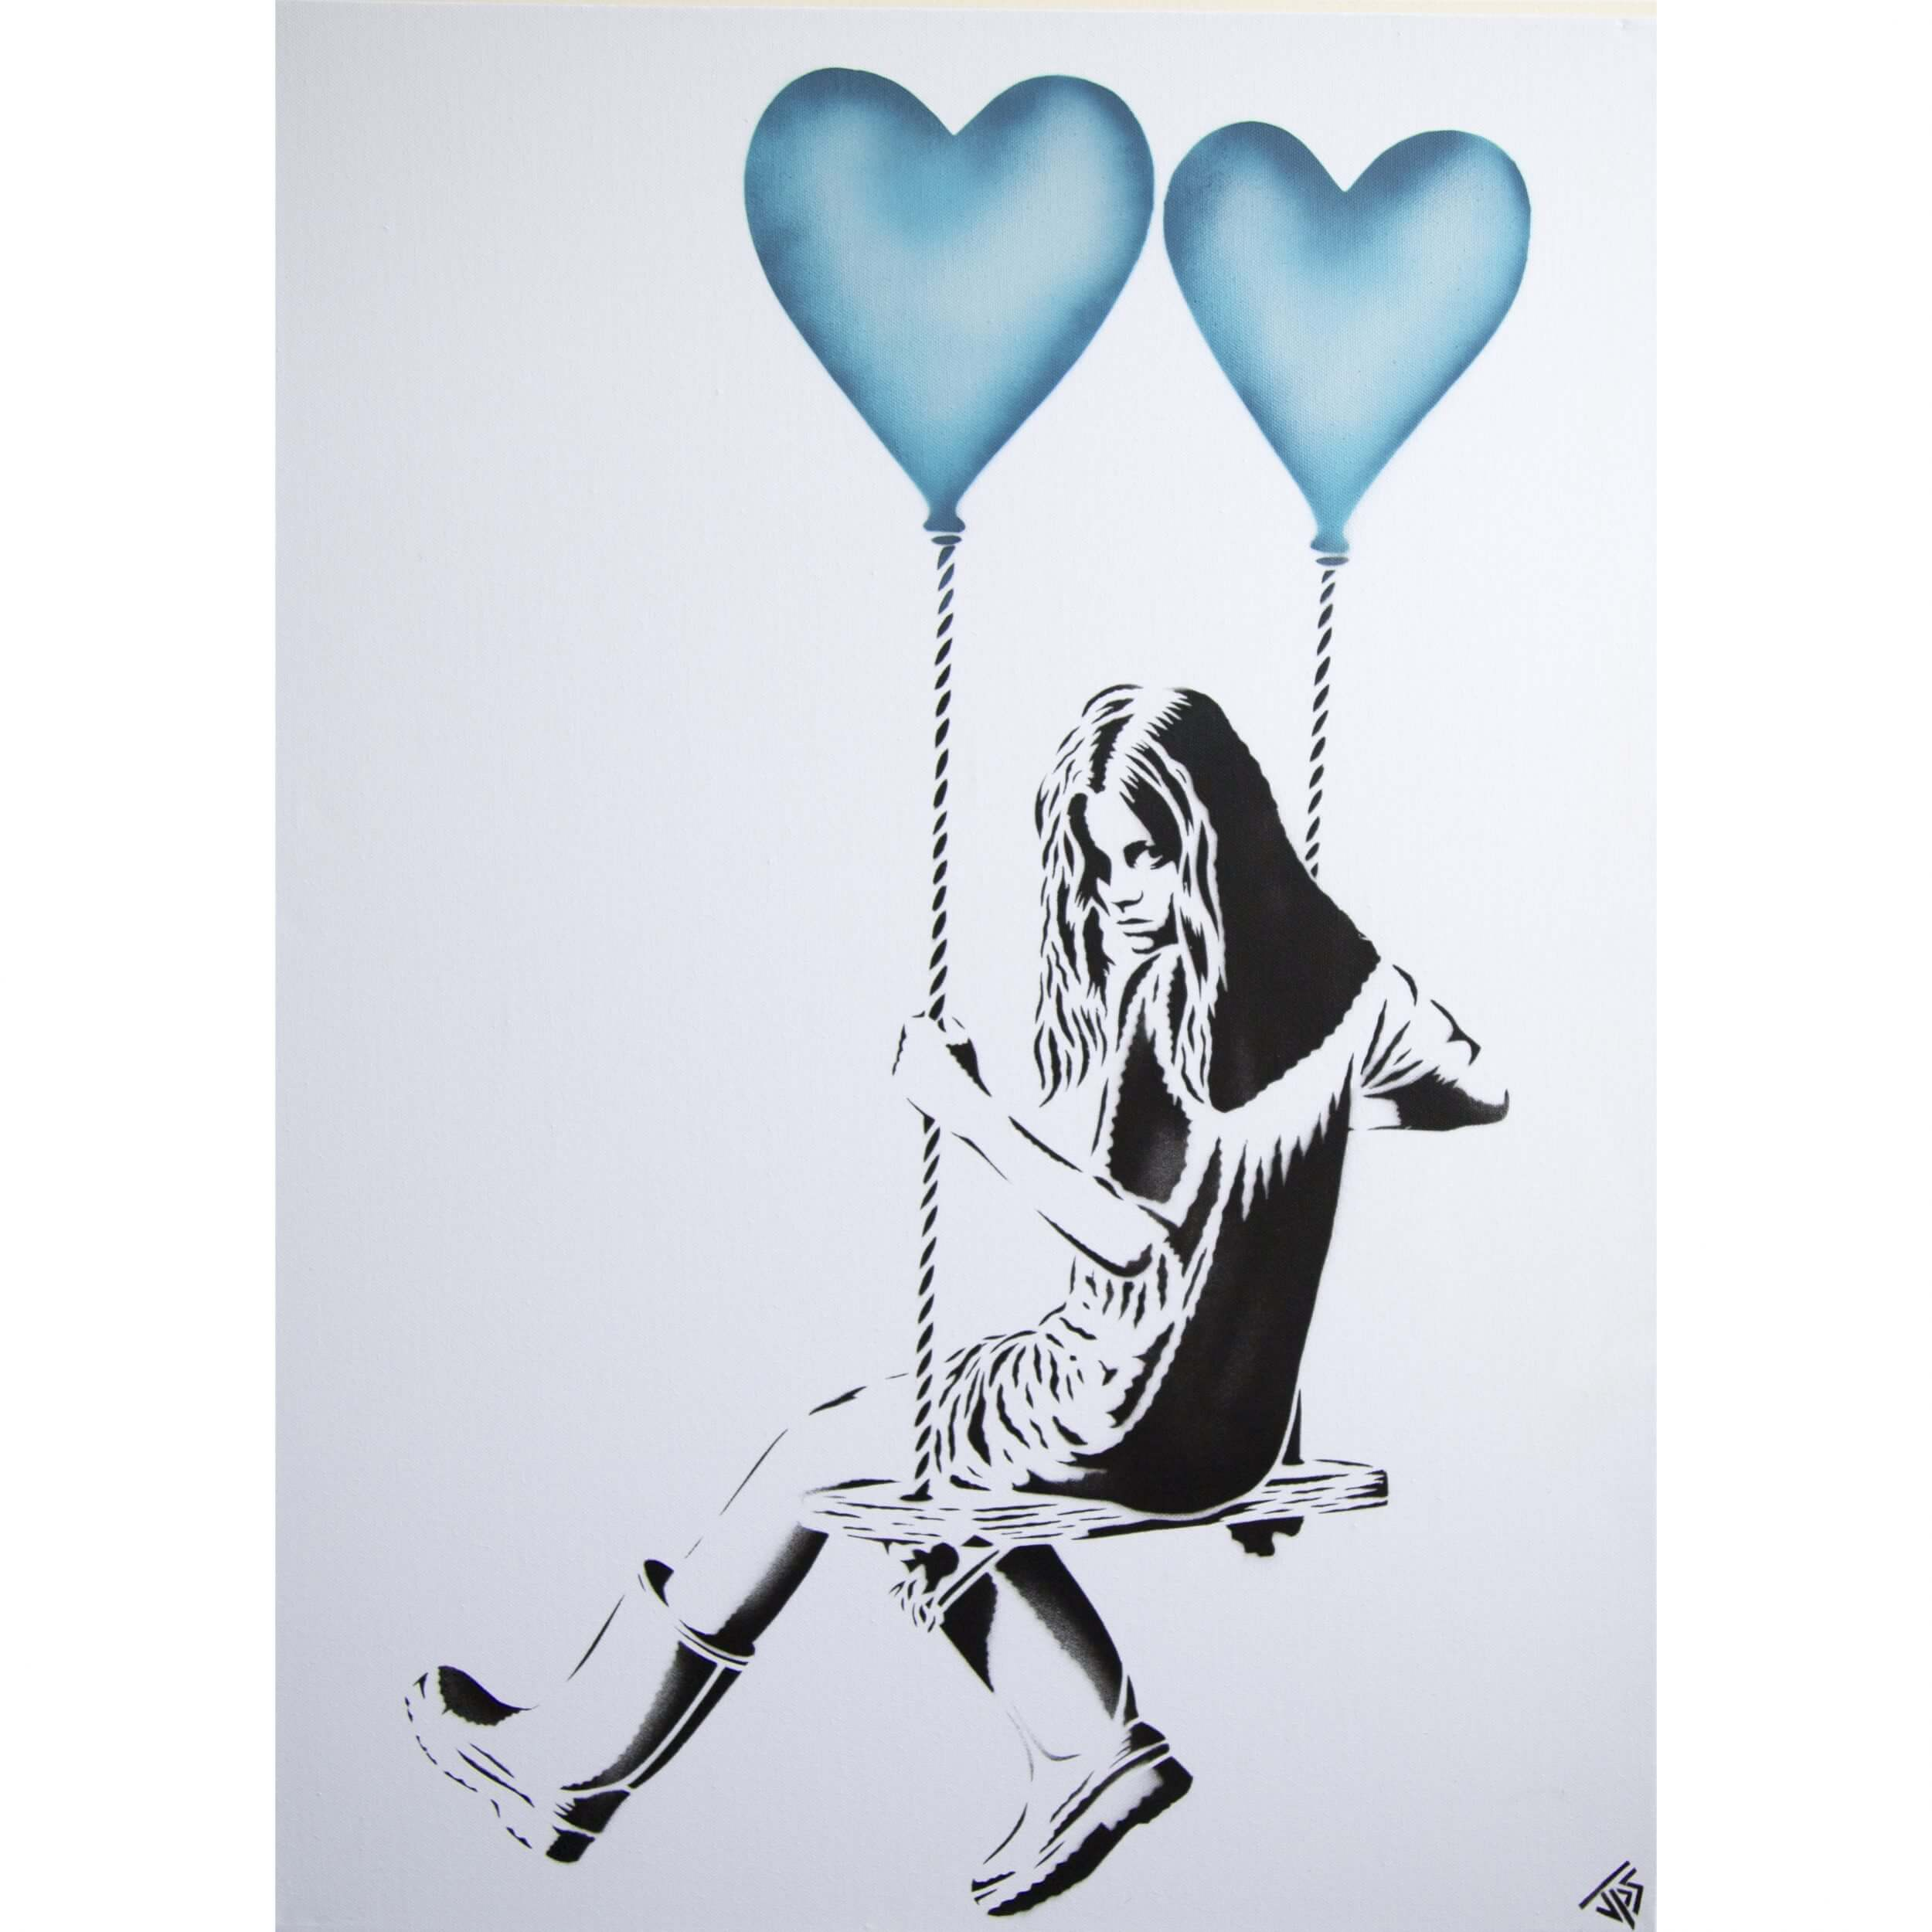 JPS - Balloon Girl (Light Blue) Canvas A/P